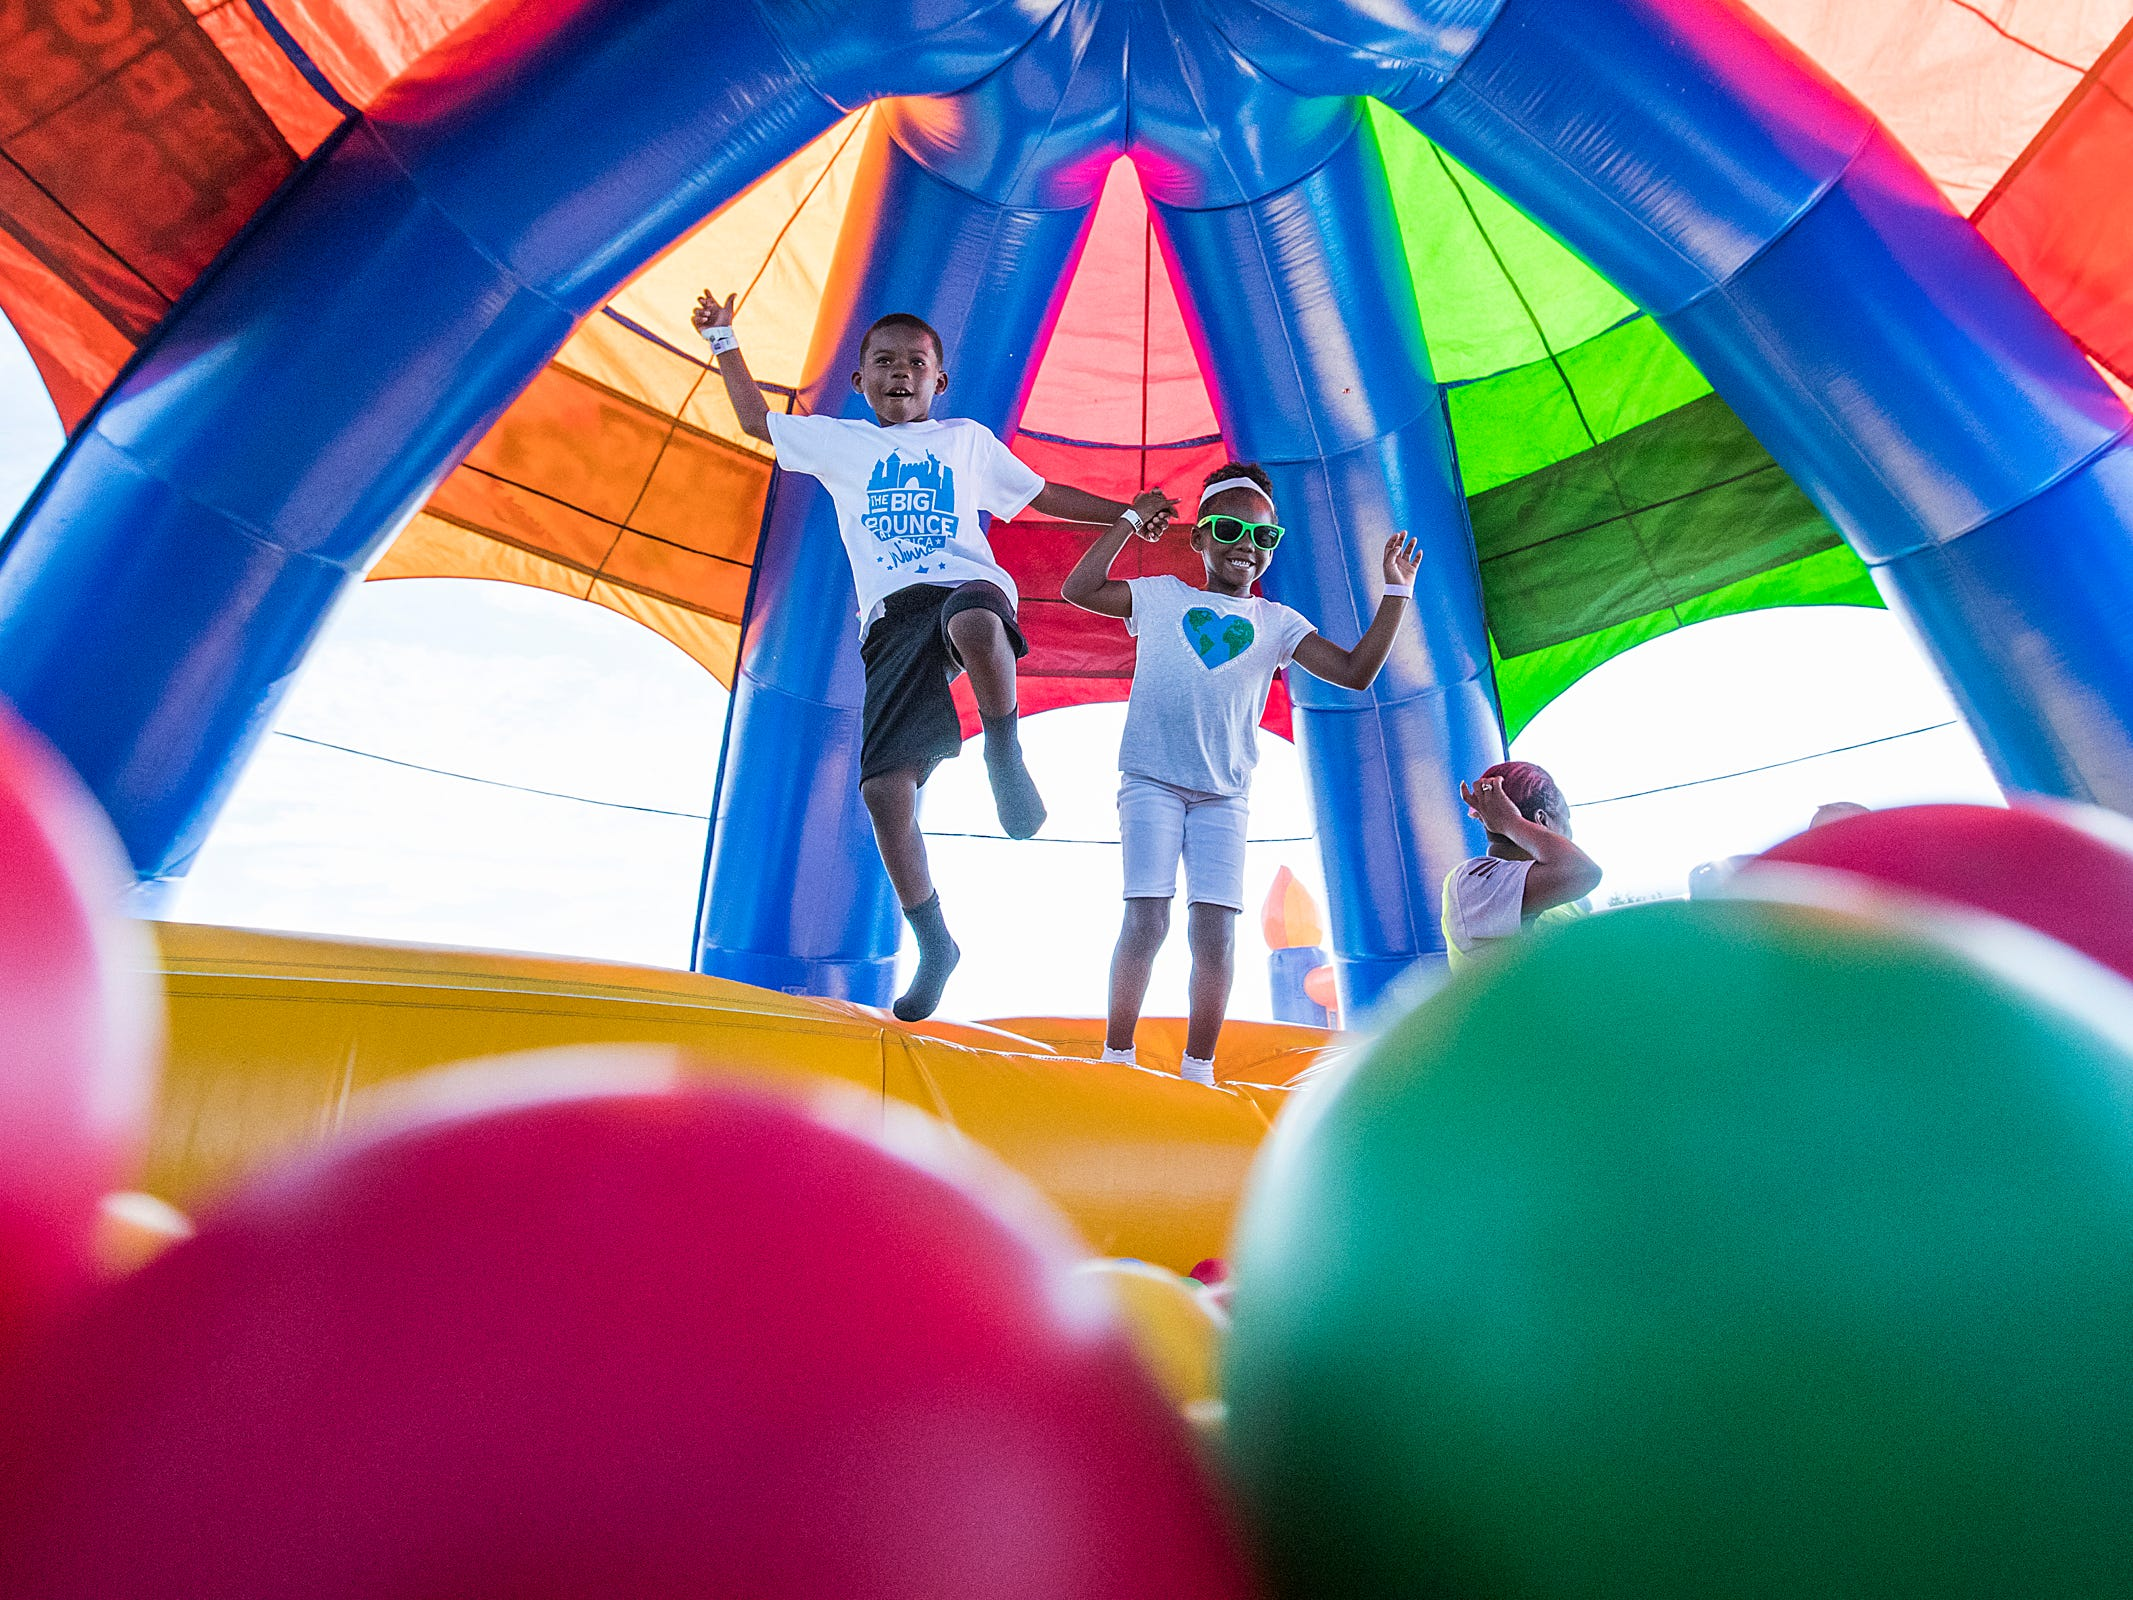 Carter Lewis, 7, and Kennedy Lewis, 5, hold hands as they jump into a ball pit together inside the Big Bounce America inflatable attraction at Waterman's Family Farm in Indianapolis, Friday, Sept. 14, 2018. The world's largest bounce house covers 10,000 square feet and will be in Indy though September 16.